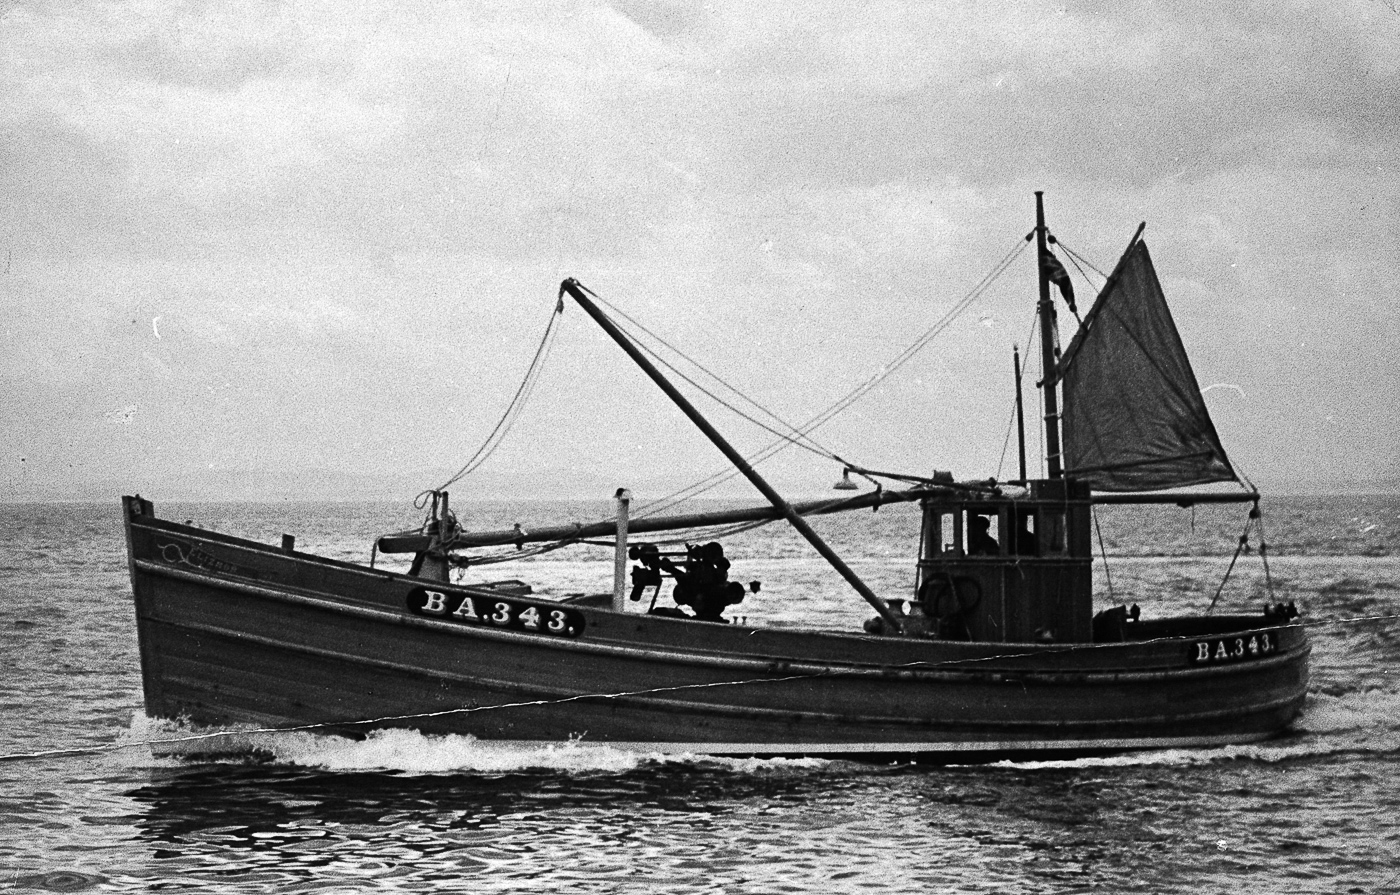 Elizamor BA343, at sea, 1948. She was built by J. N. Miller boatbuilders, St Monans, as a dual purpose ringnetter and seiner. She was 54ft long and weighed 27 tons.